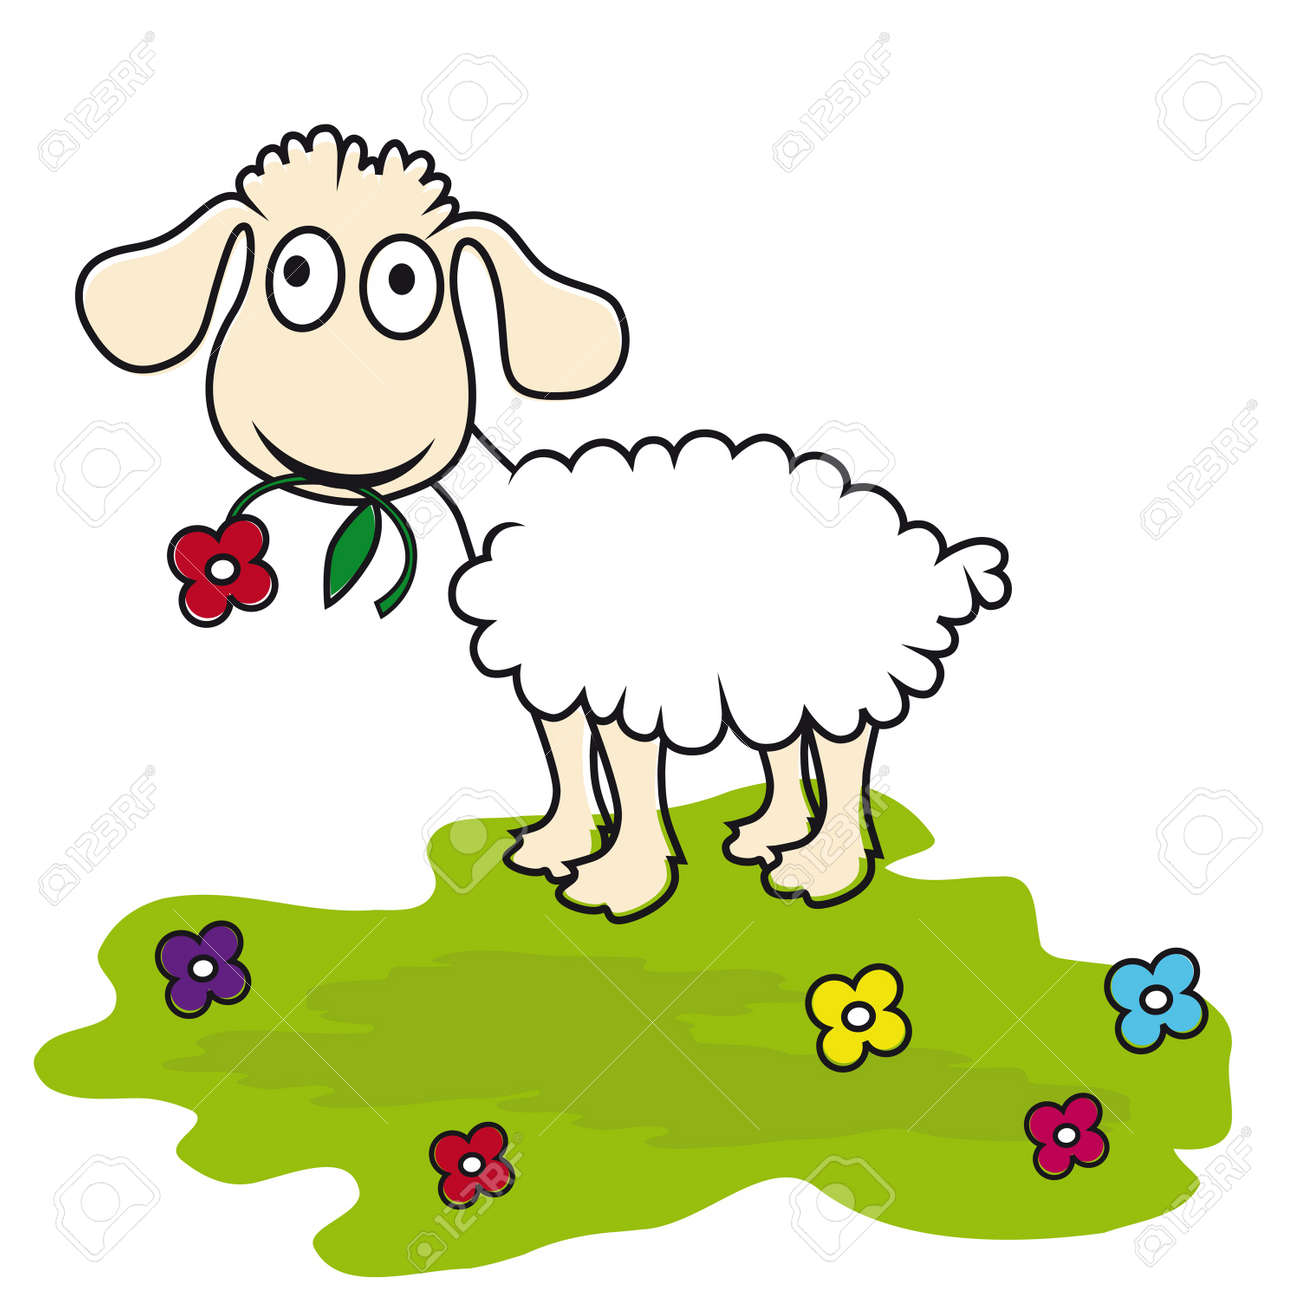 ewe images u0026 stock pictures royalty free ewe photos and stock